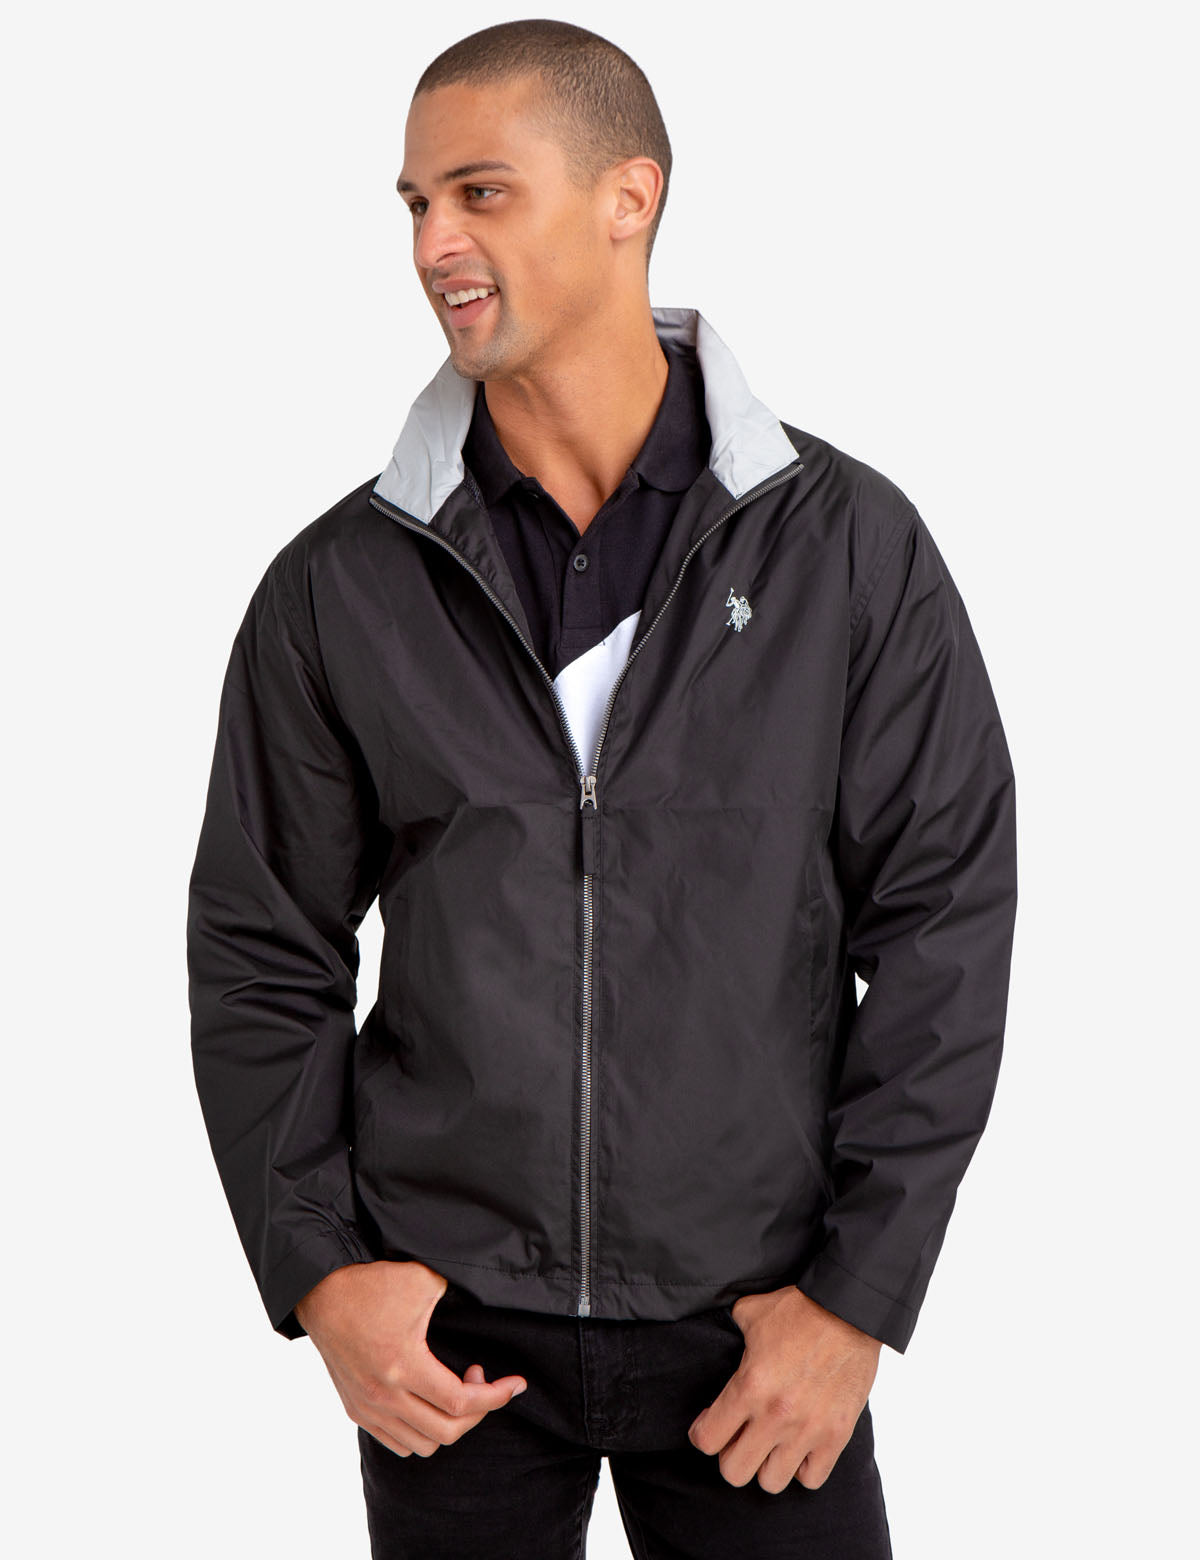 COLLARED WINDBREAKER - U.S. Polo Assn.